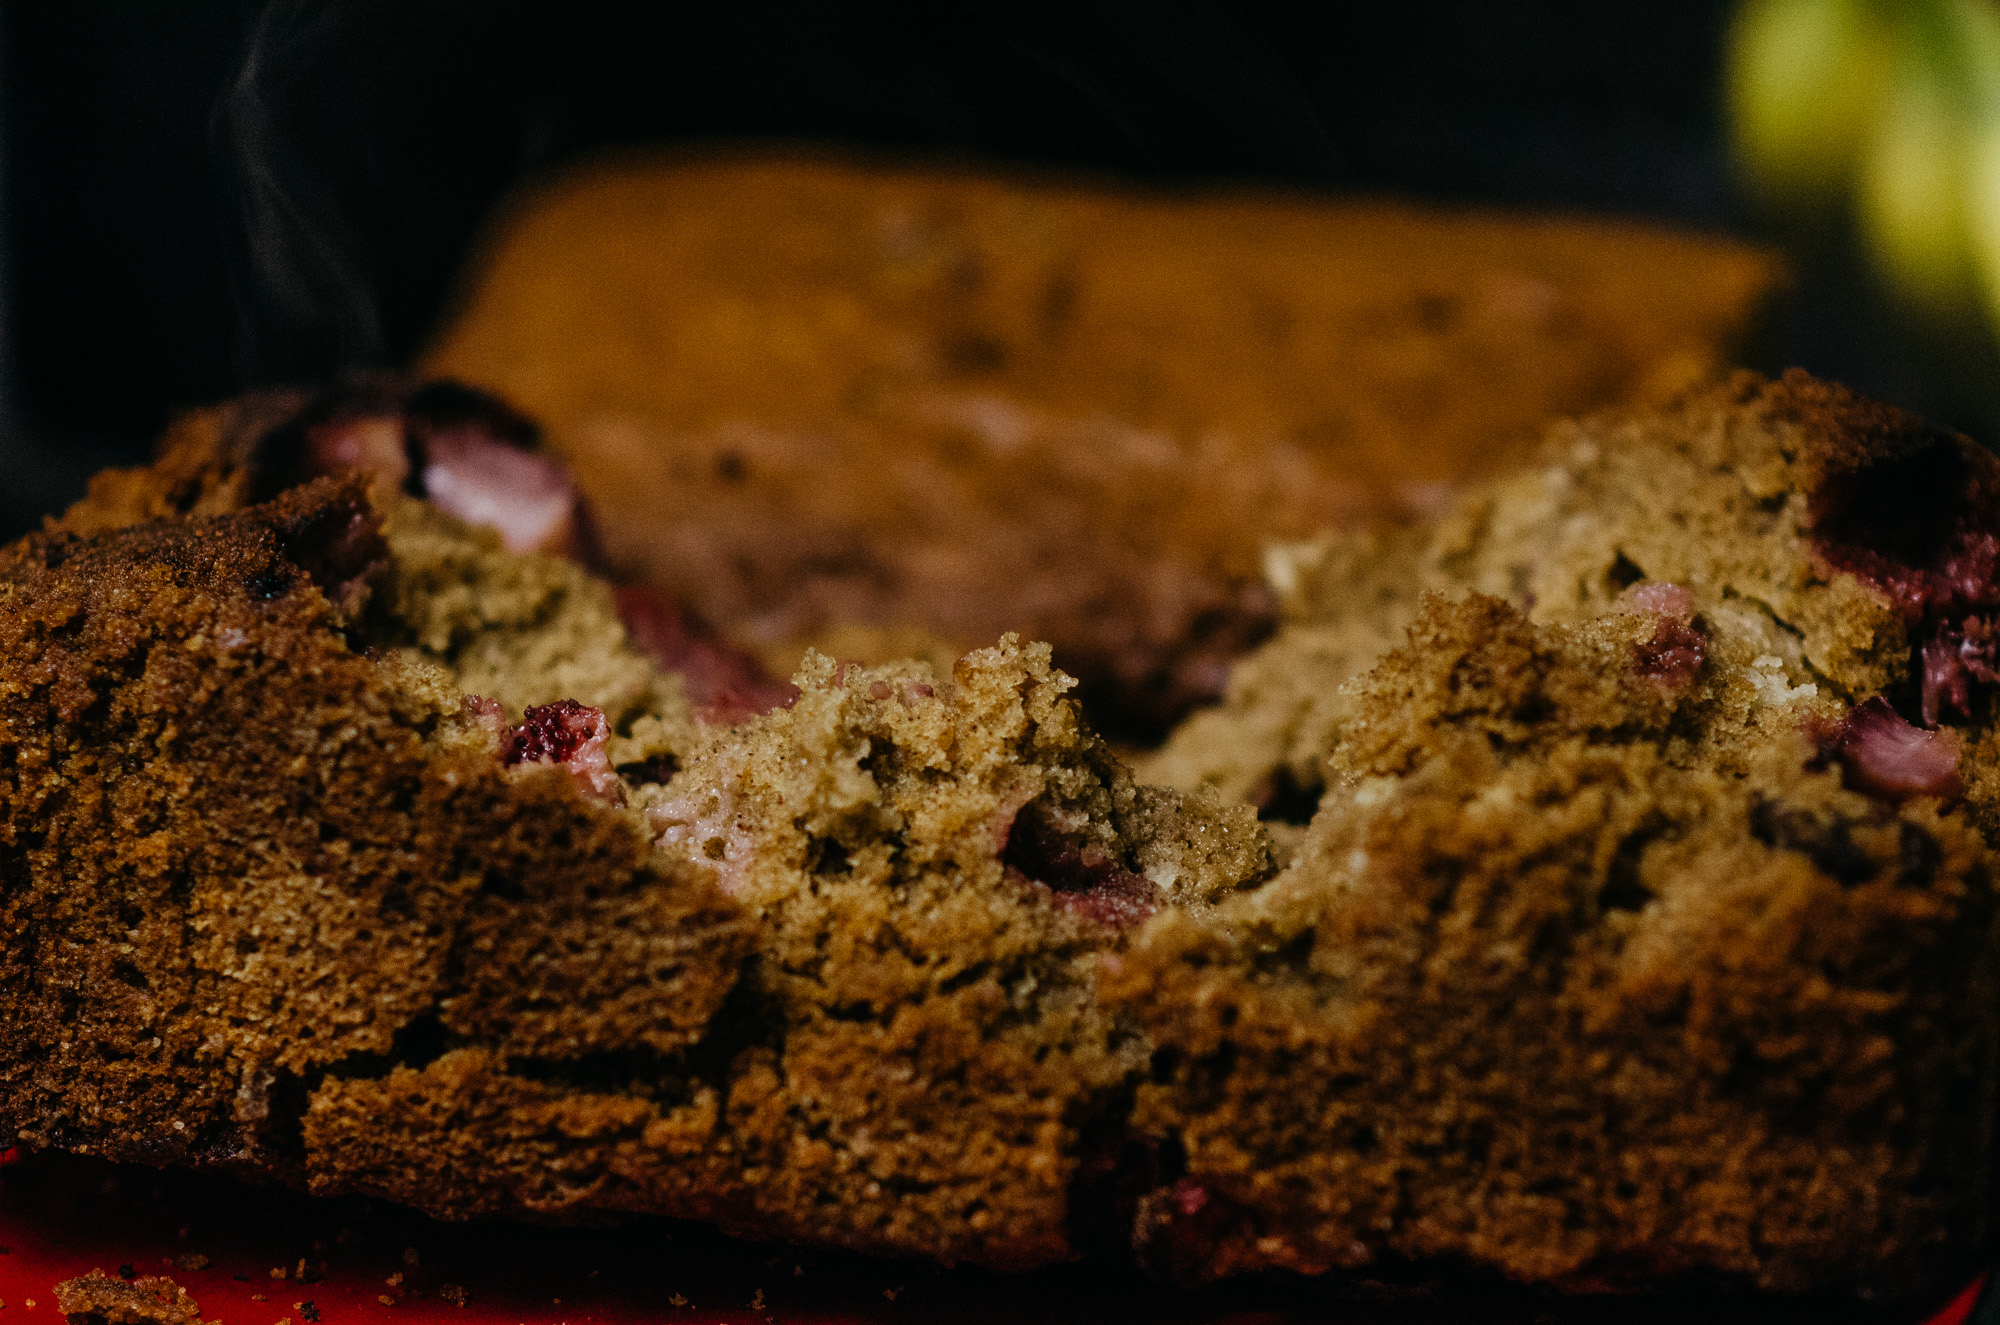 samantha whitford photography strawberry nut bread (4).jpg